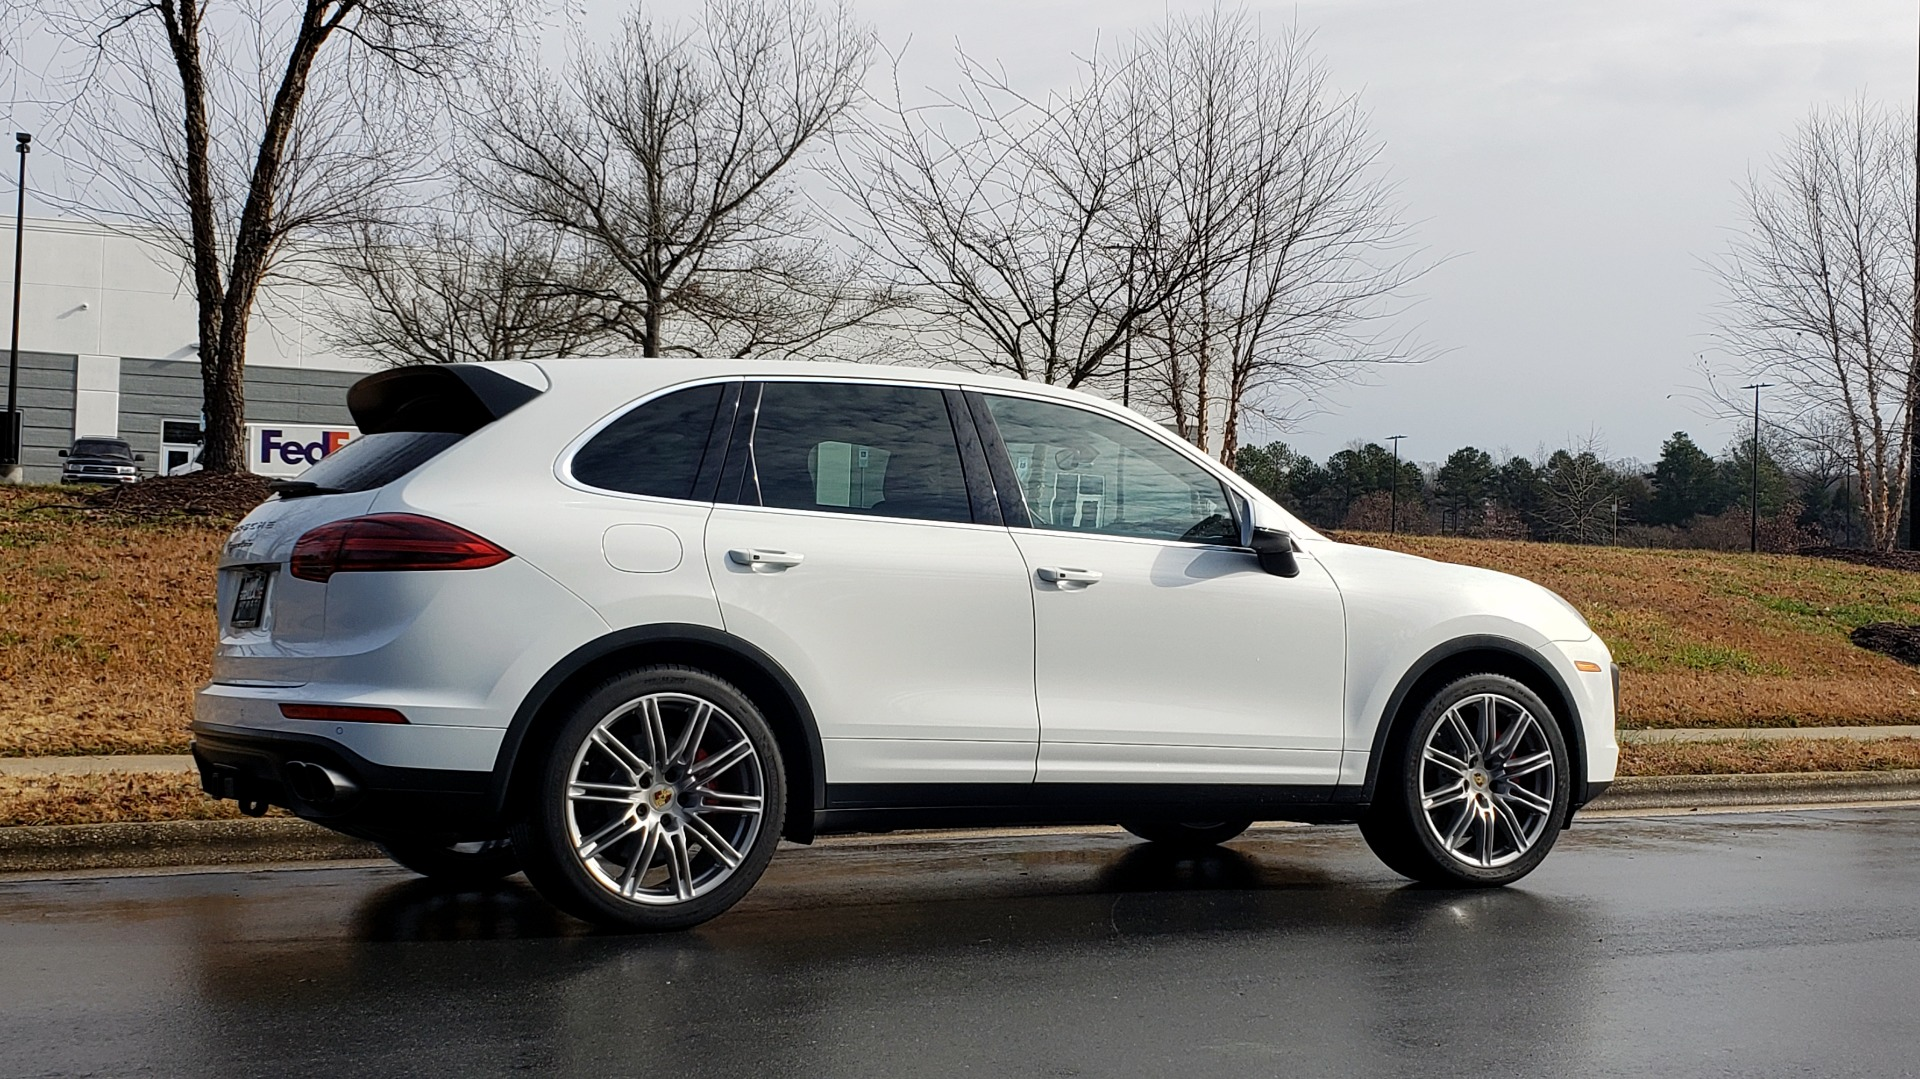 Used 2015 Porsche CAYENNE TURBO V8 / PREMIUM / NAV / SUNROOF / PARK ASSIST / LCA / REARVIEW for sale $47,995 at Formula Imports in Charlotte NC 28227 9